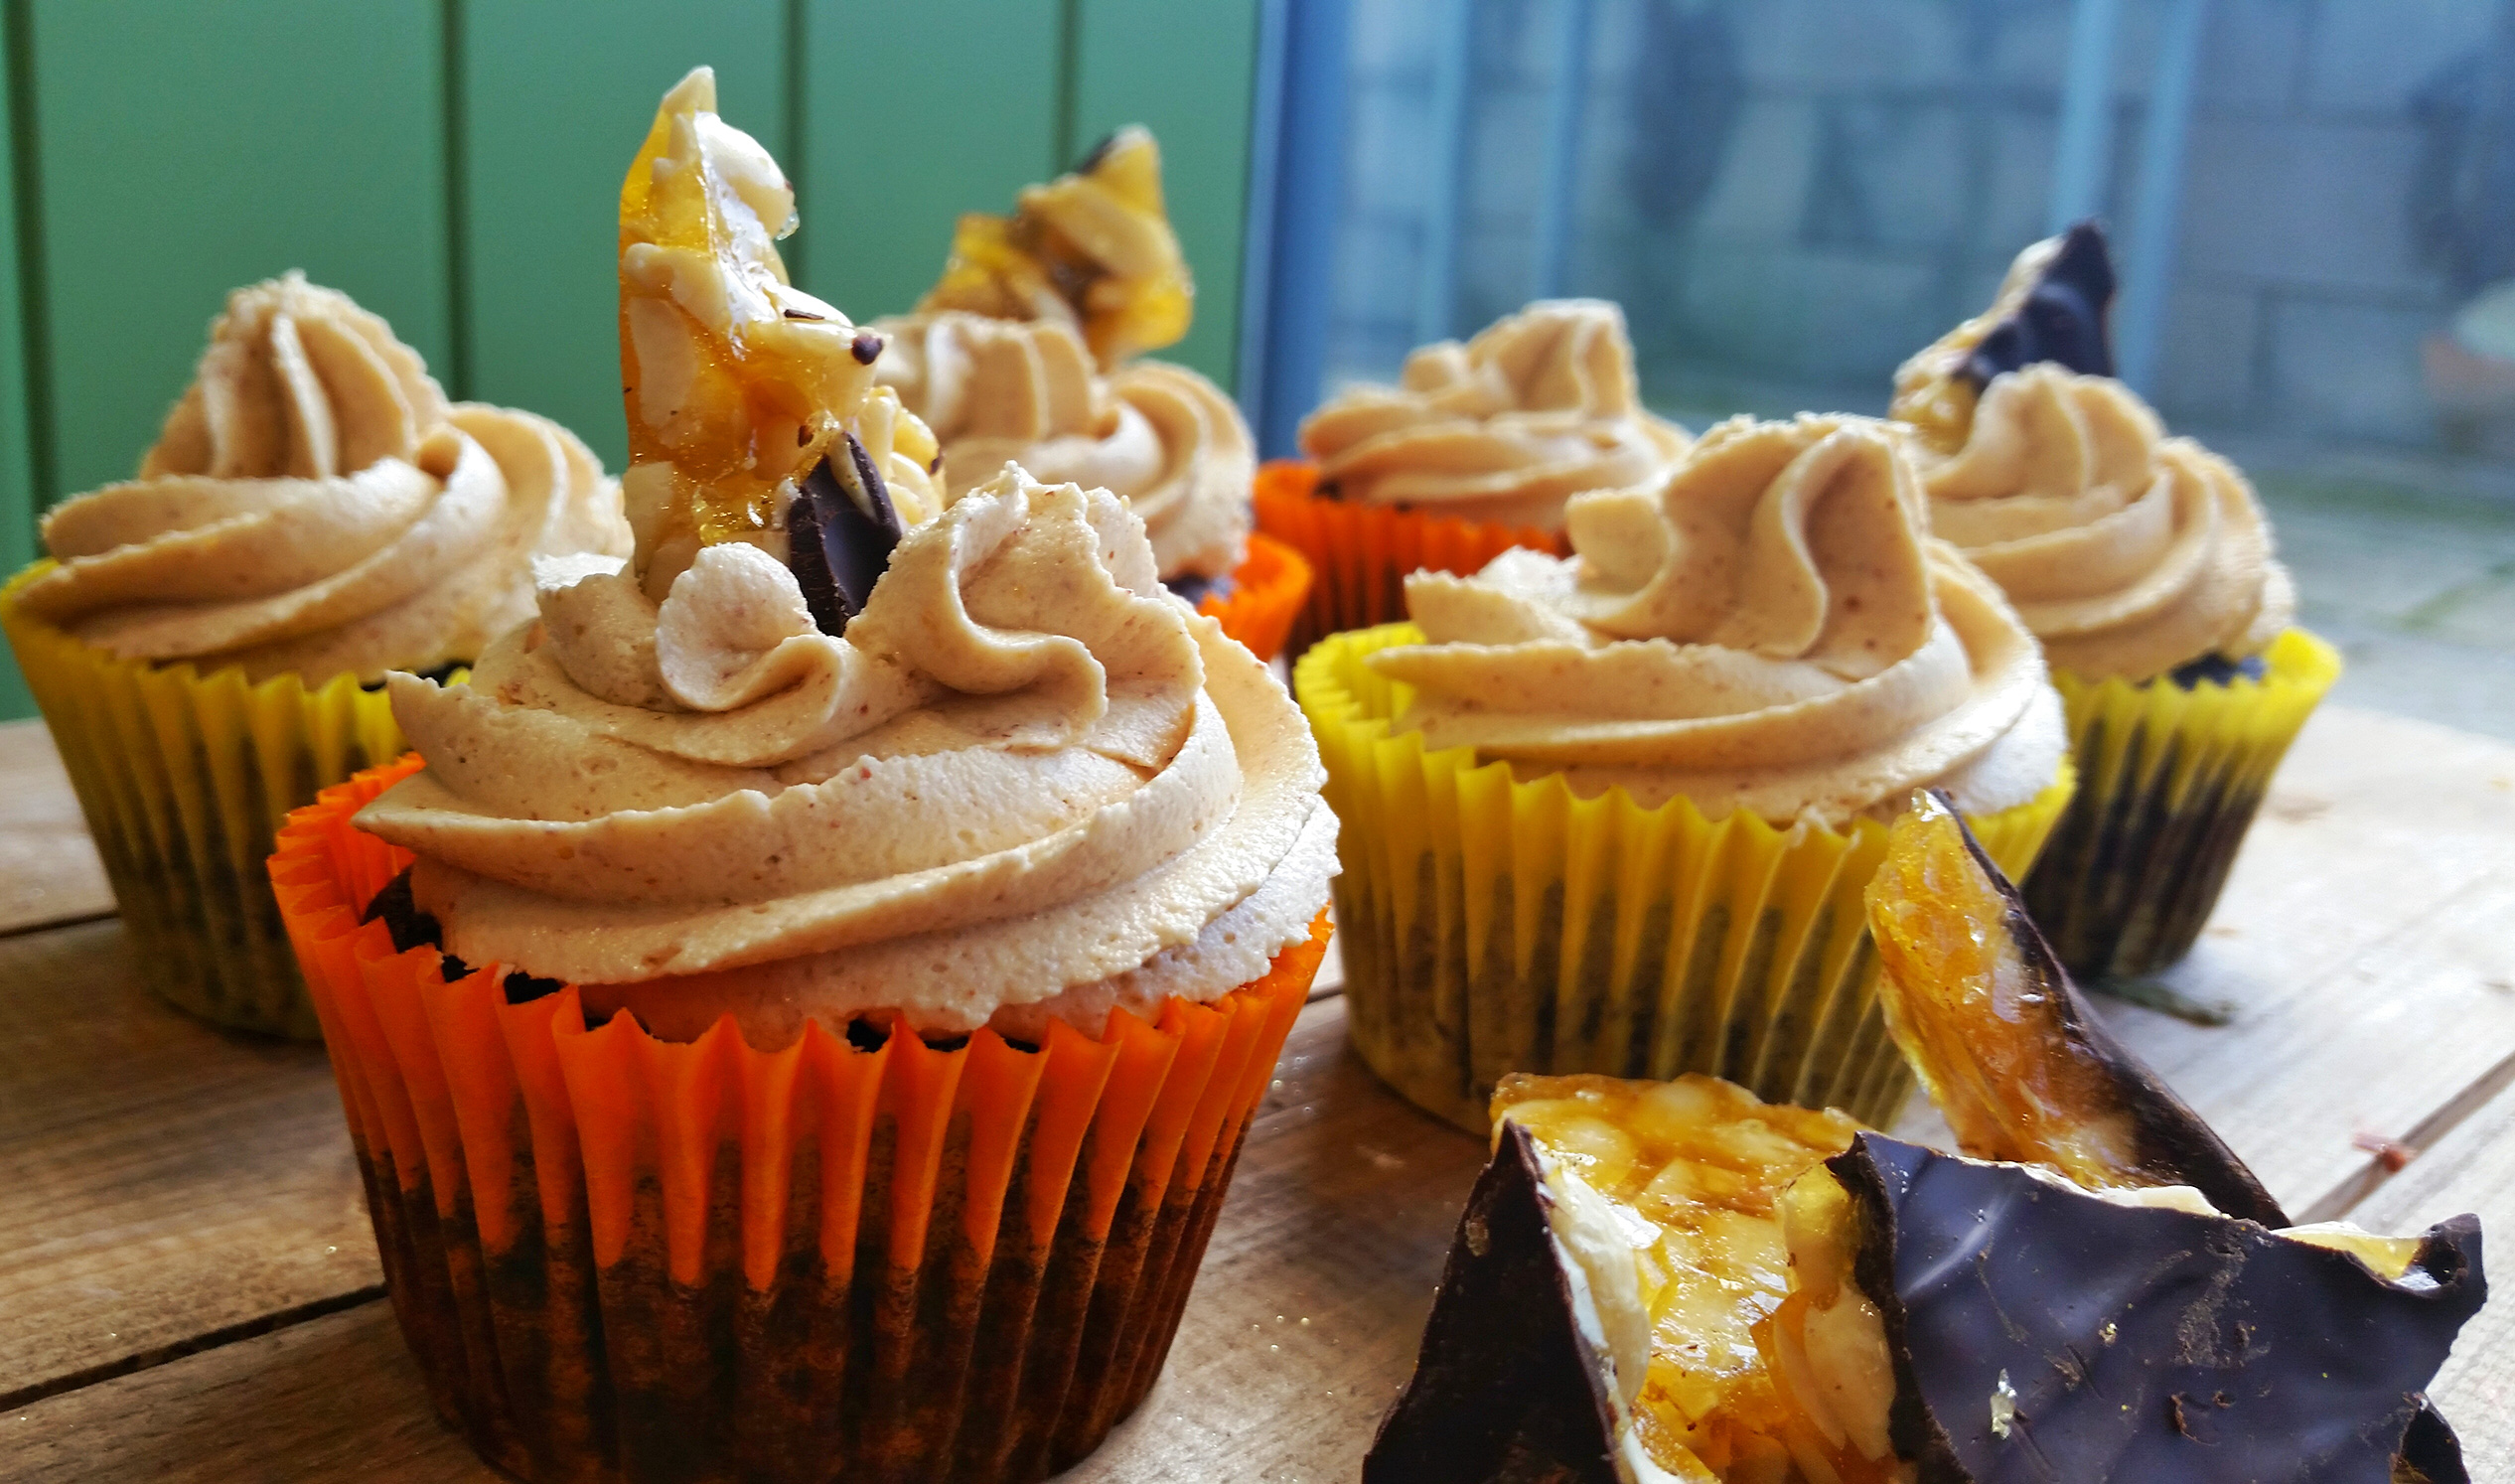 Vegan Chocolate Peanut Butter Cupcakes With Peanut Brittle